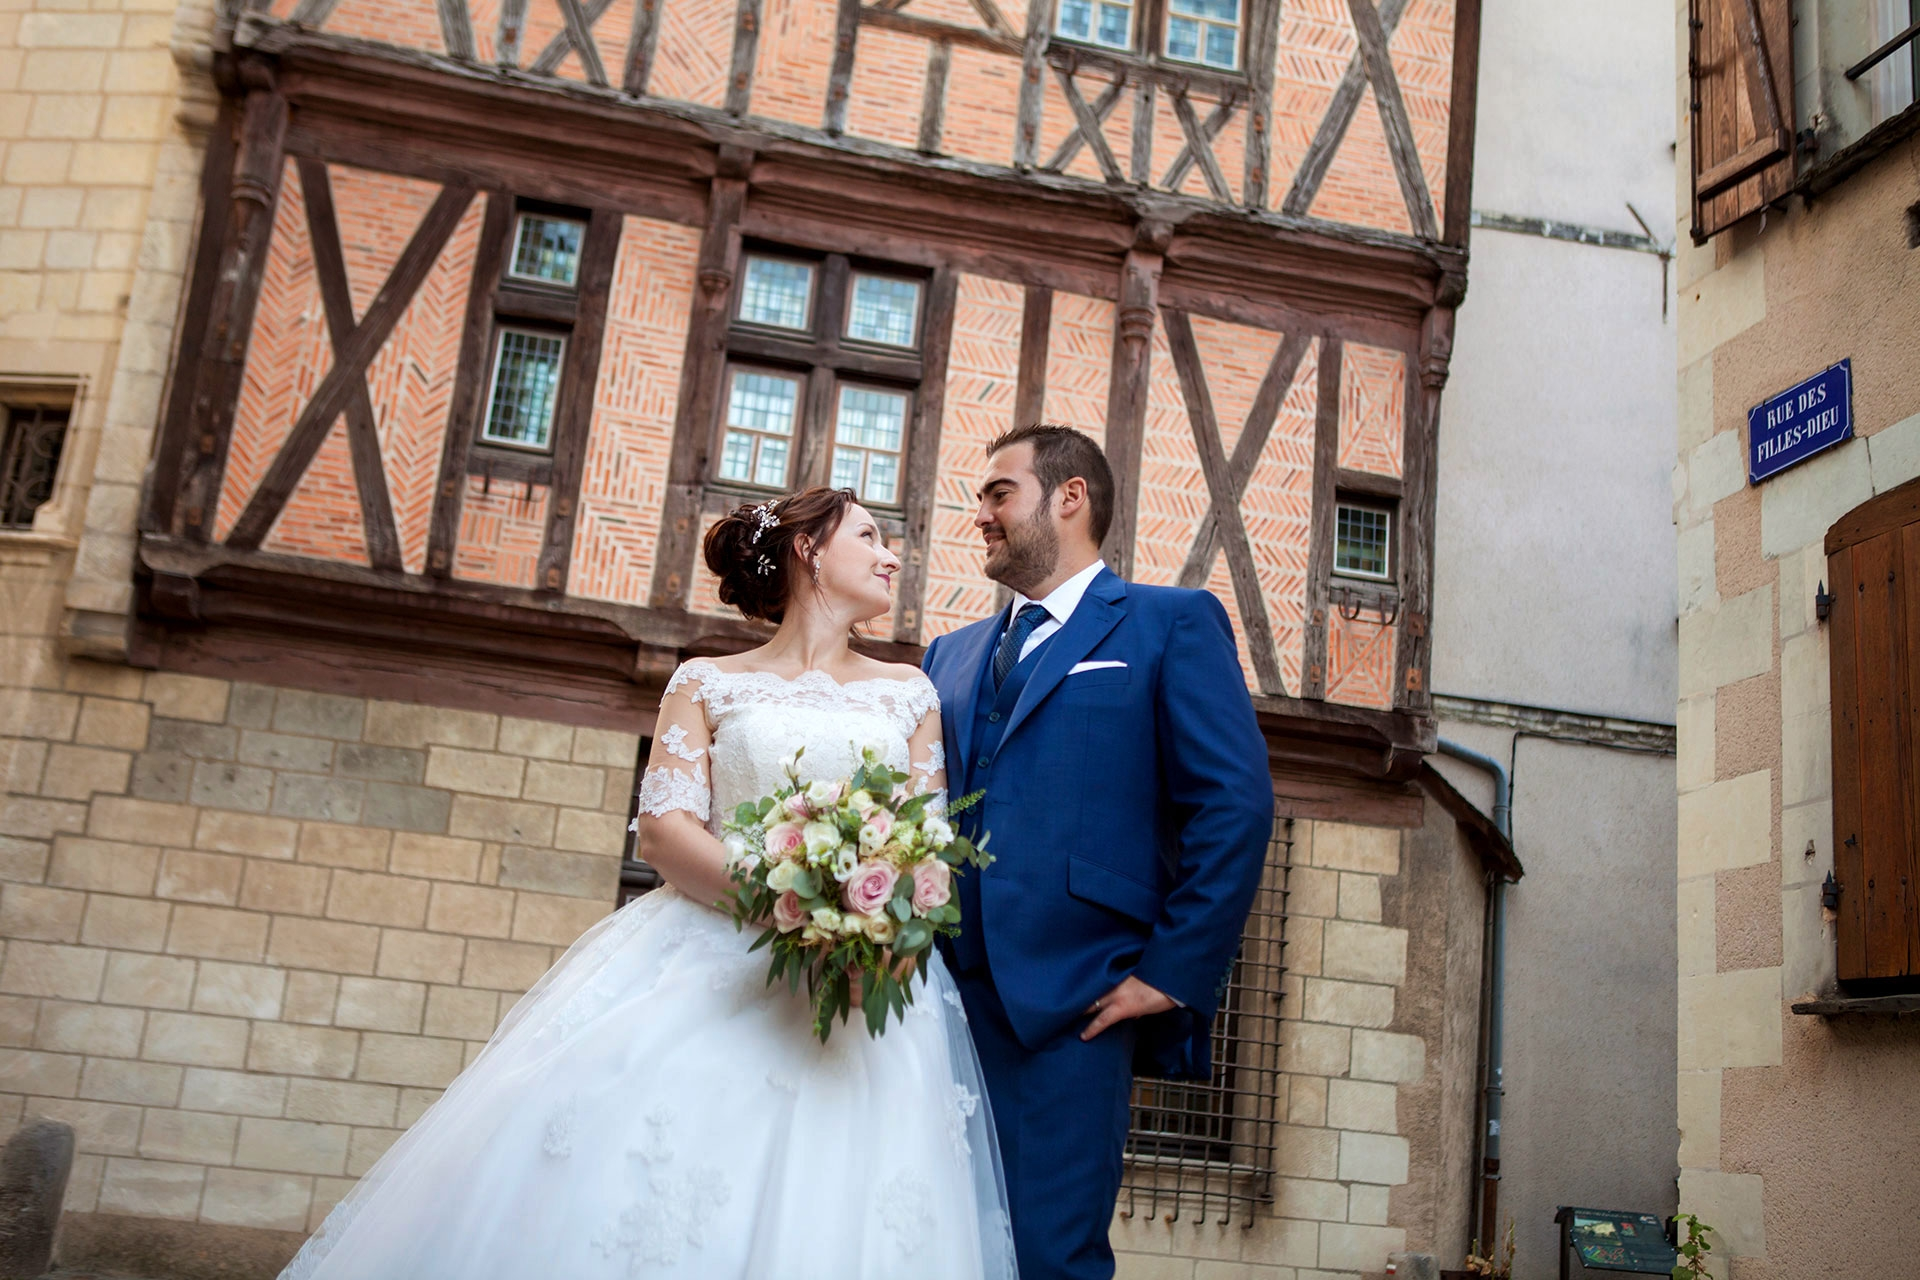 mariage-tiphaine-rudy-59